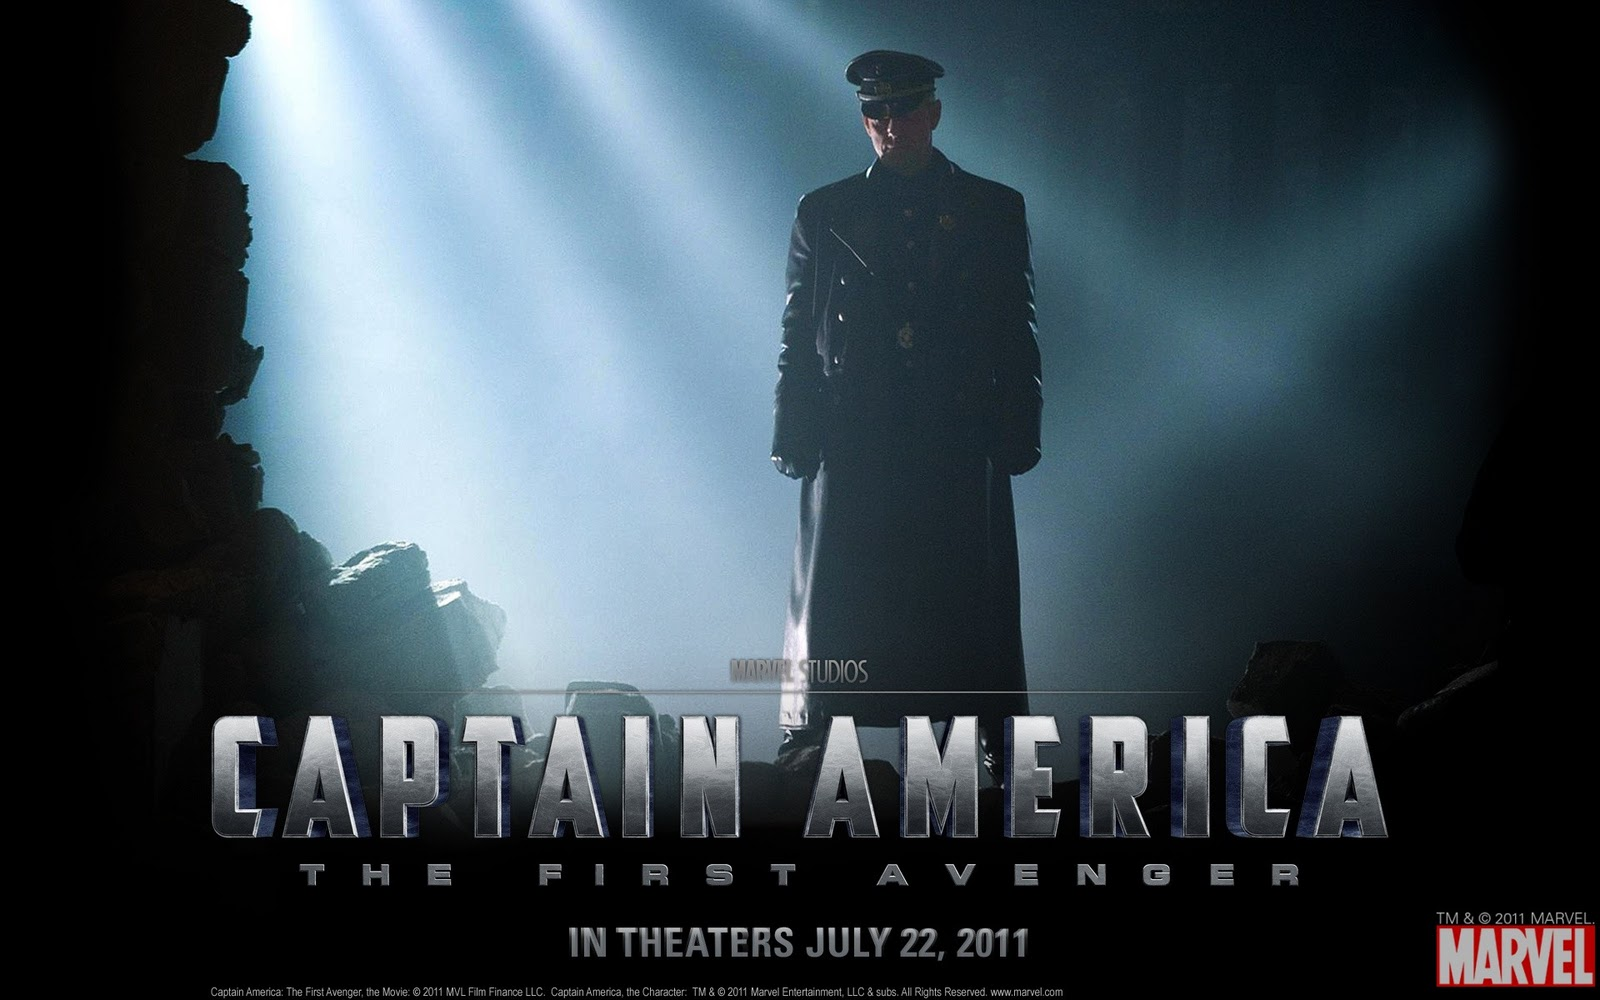 http://3.bp.blogspot.com/-mFS230qQ3Mo/TrJLg7jyifI/AAAAAAAAI8w/PcVAI6gwJXE/s1600/movie+wallpaper_captain+america_04.jpg